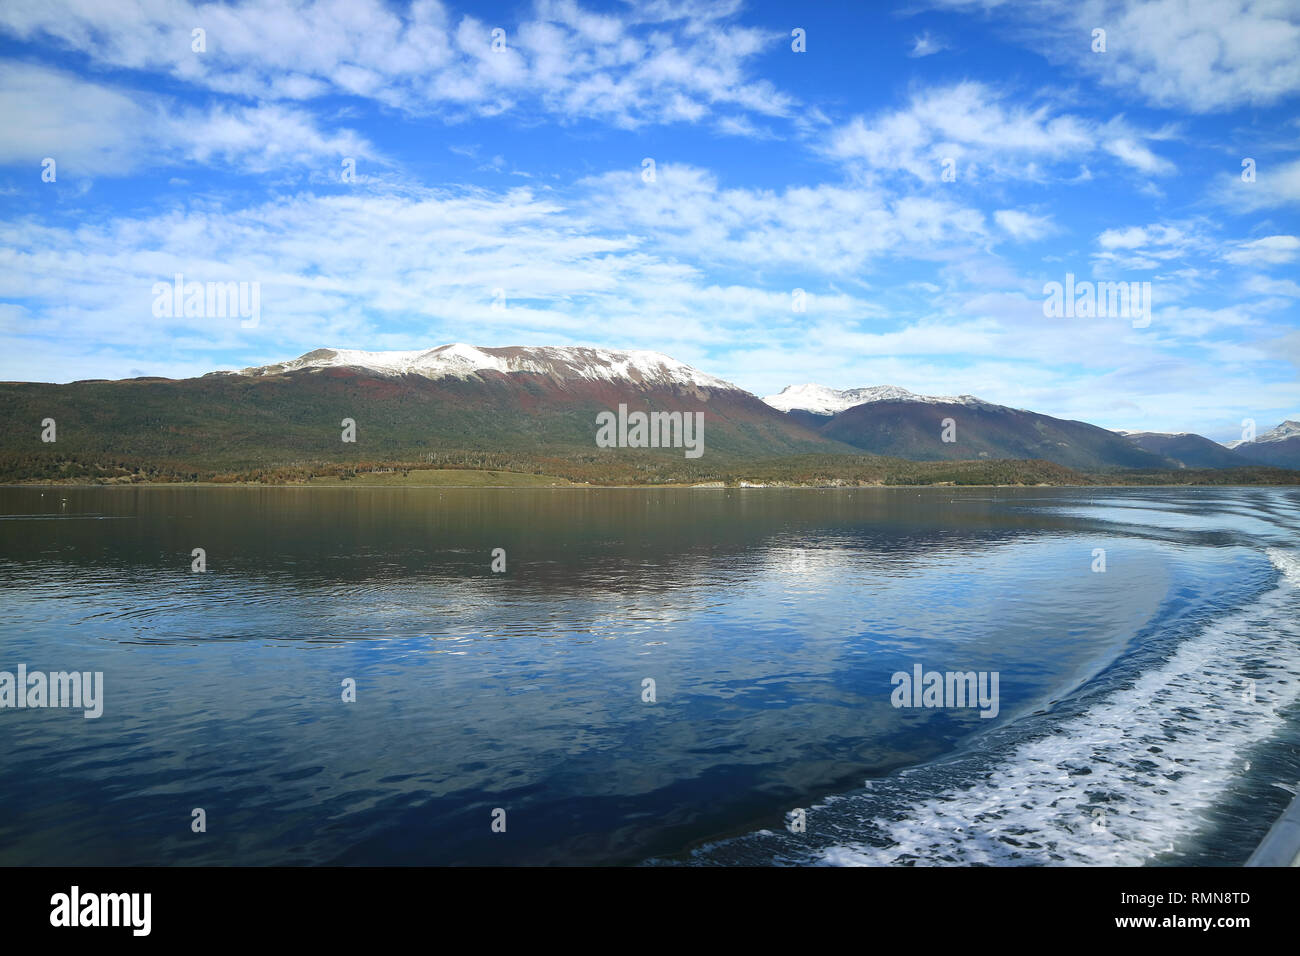 Curve line of water foam at the stern of cruise ship cruising the Beagle channel, Patagonia, Argentina - Stock Image